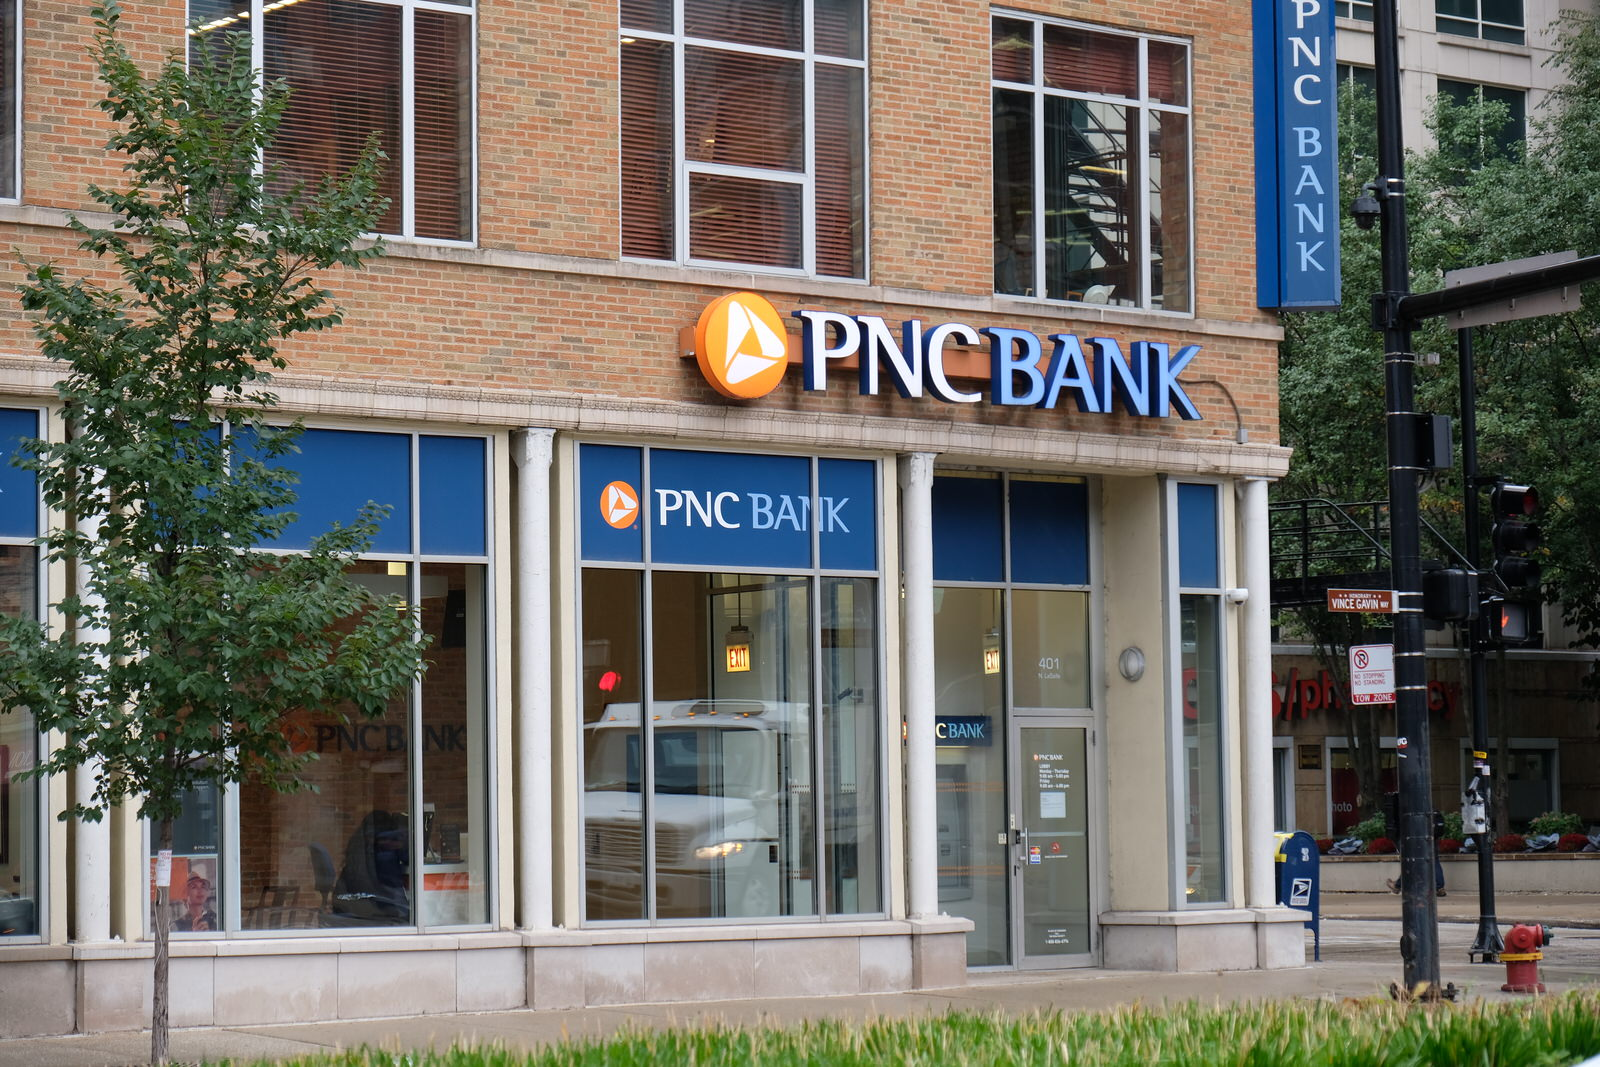 PNC Bank branch in downtown Chicago, Illinois.